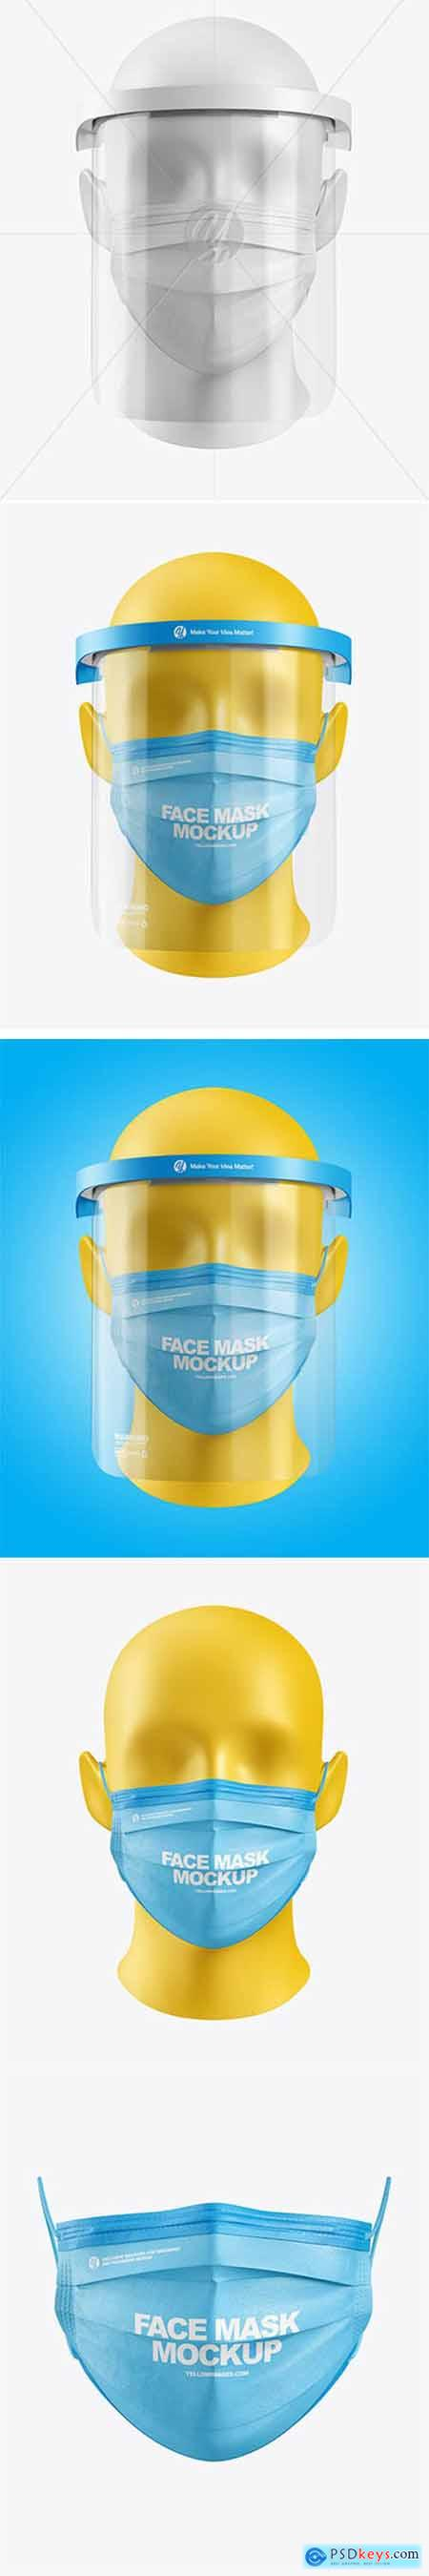 Face Mask & Face Shield Mockup 64074